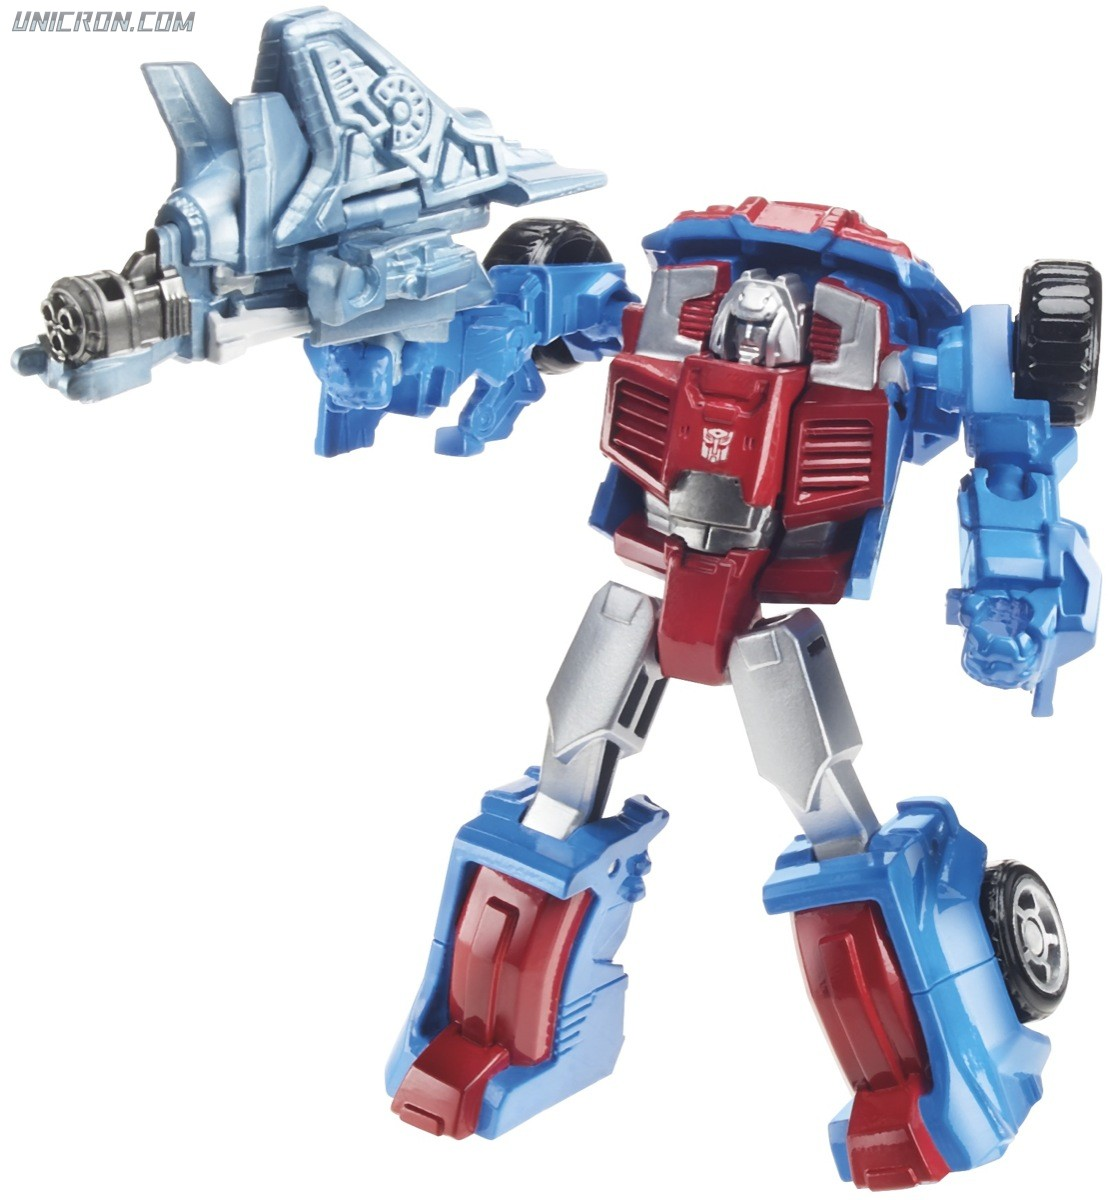 Transformers Generations Gears & Autobot Eclipse toy